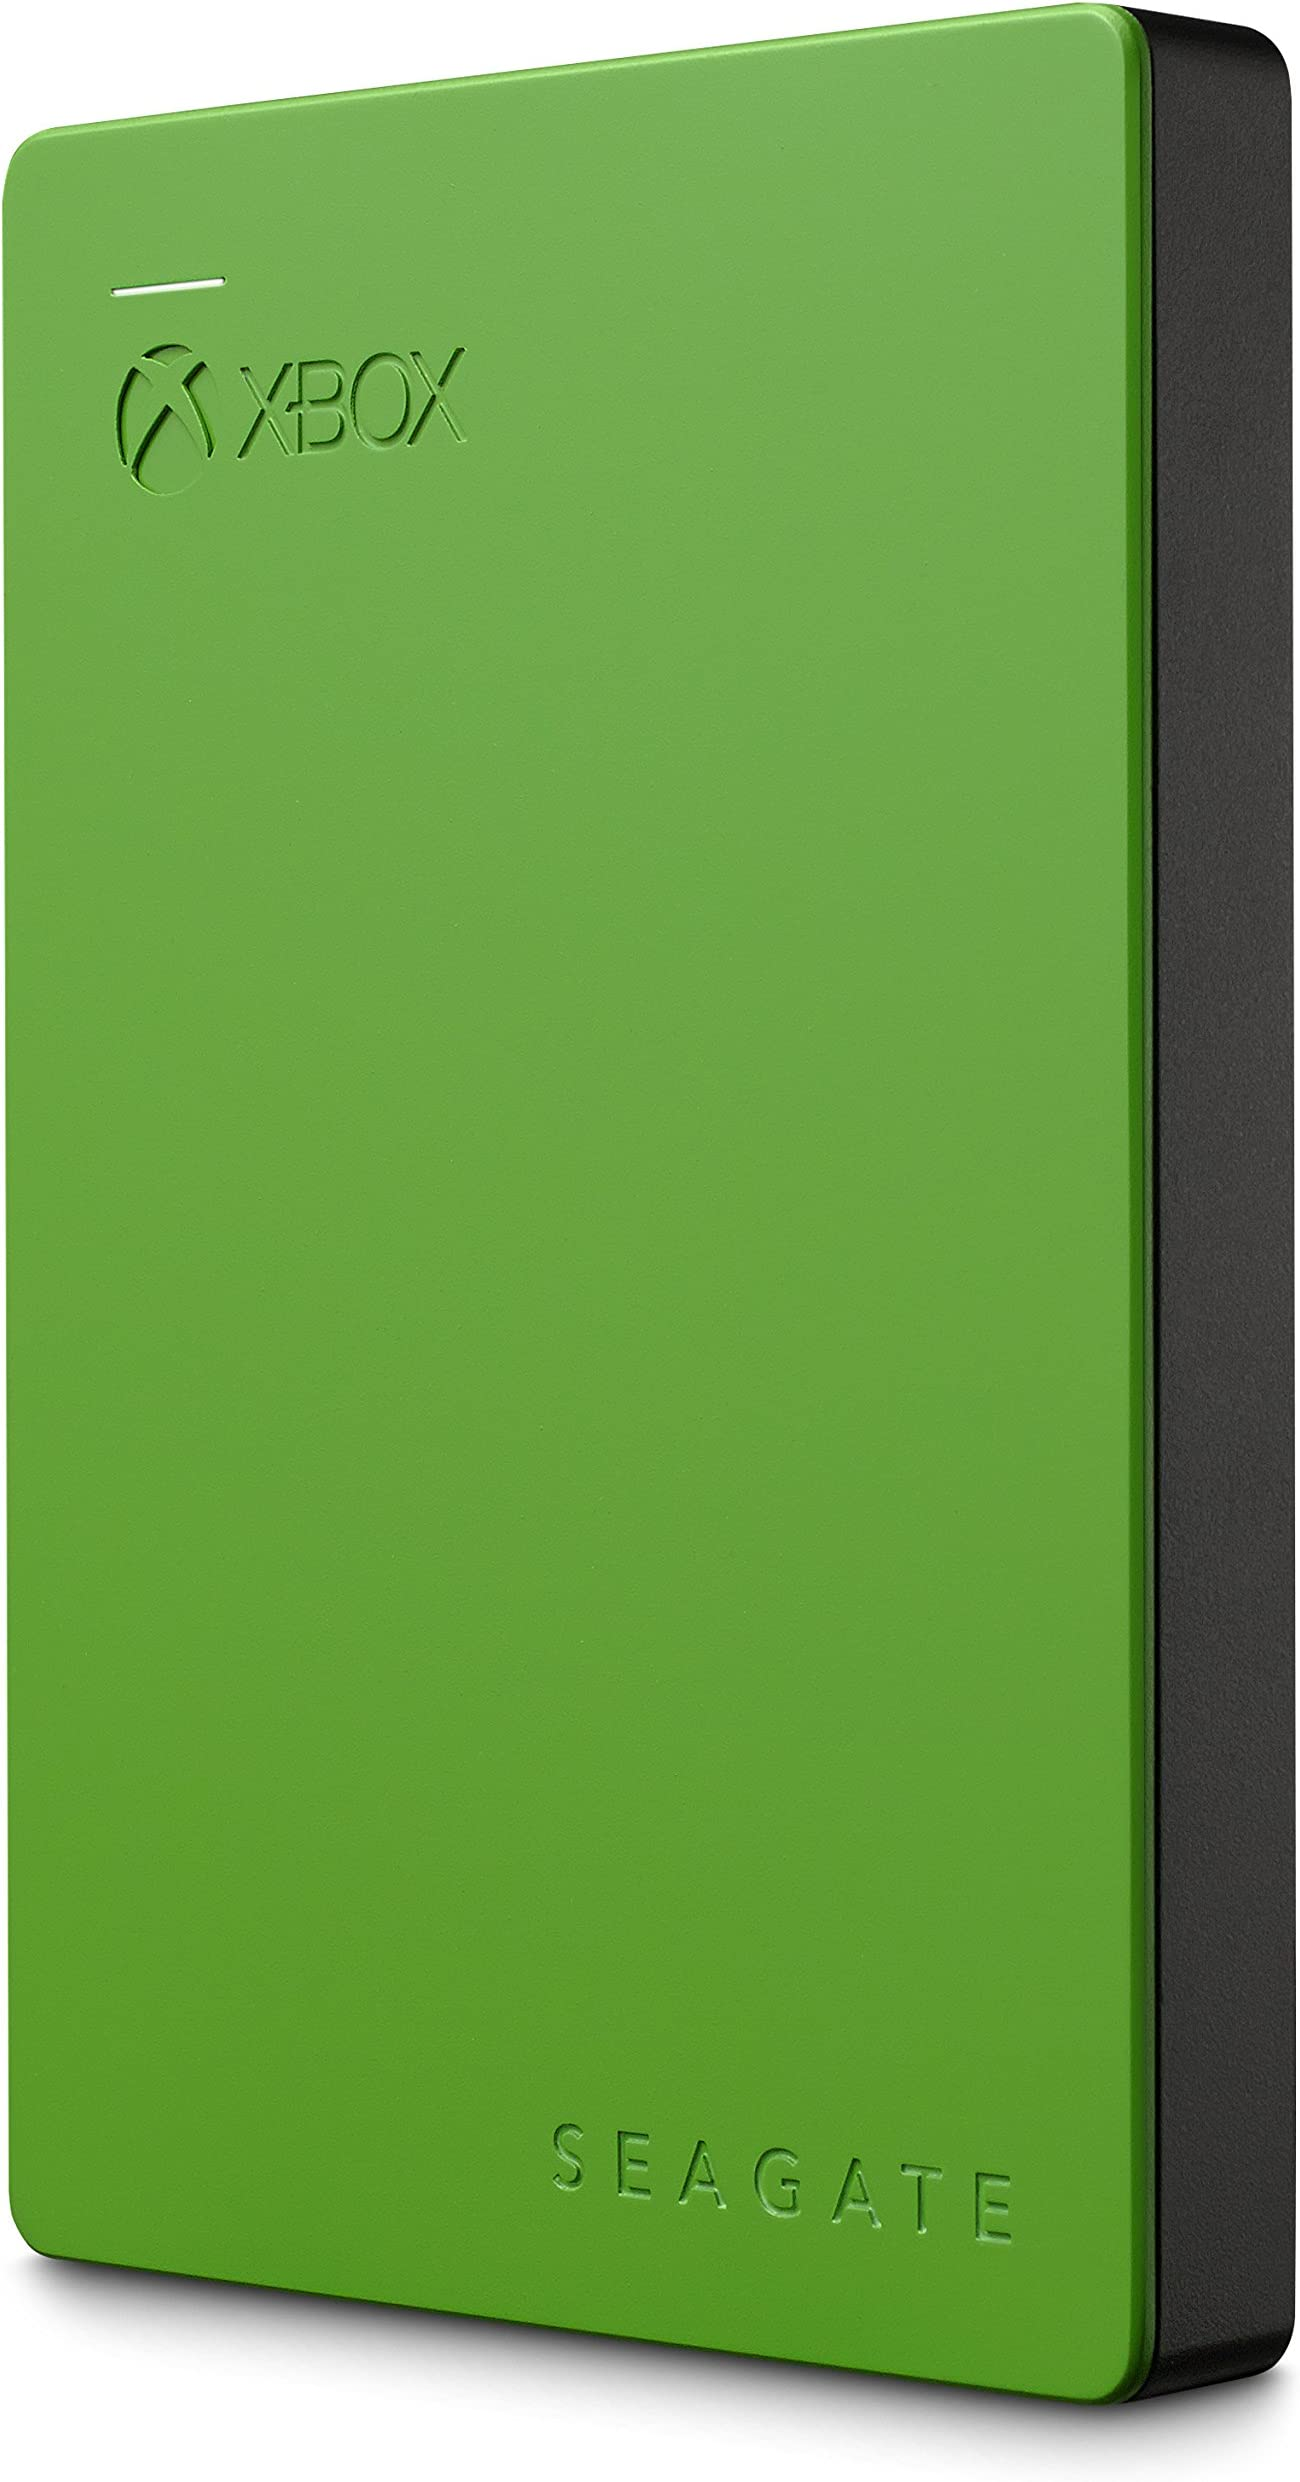 Seagate Game Drive 2TB External Hard Drive Portable HDD, Designed For Xbox One, Green - 1 year Rescue Service (STEA2000403)